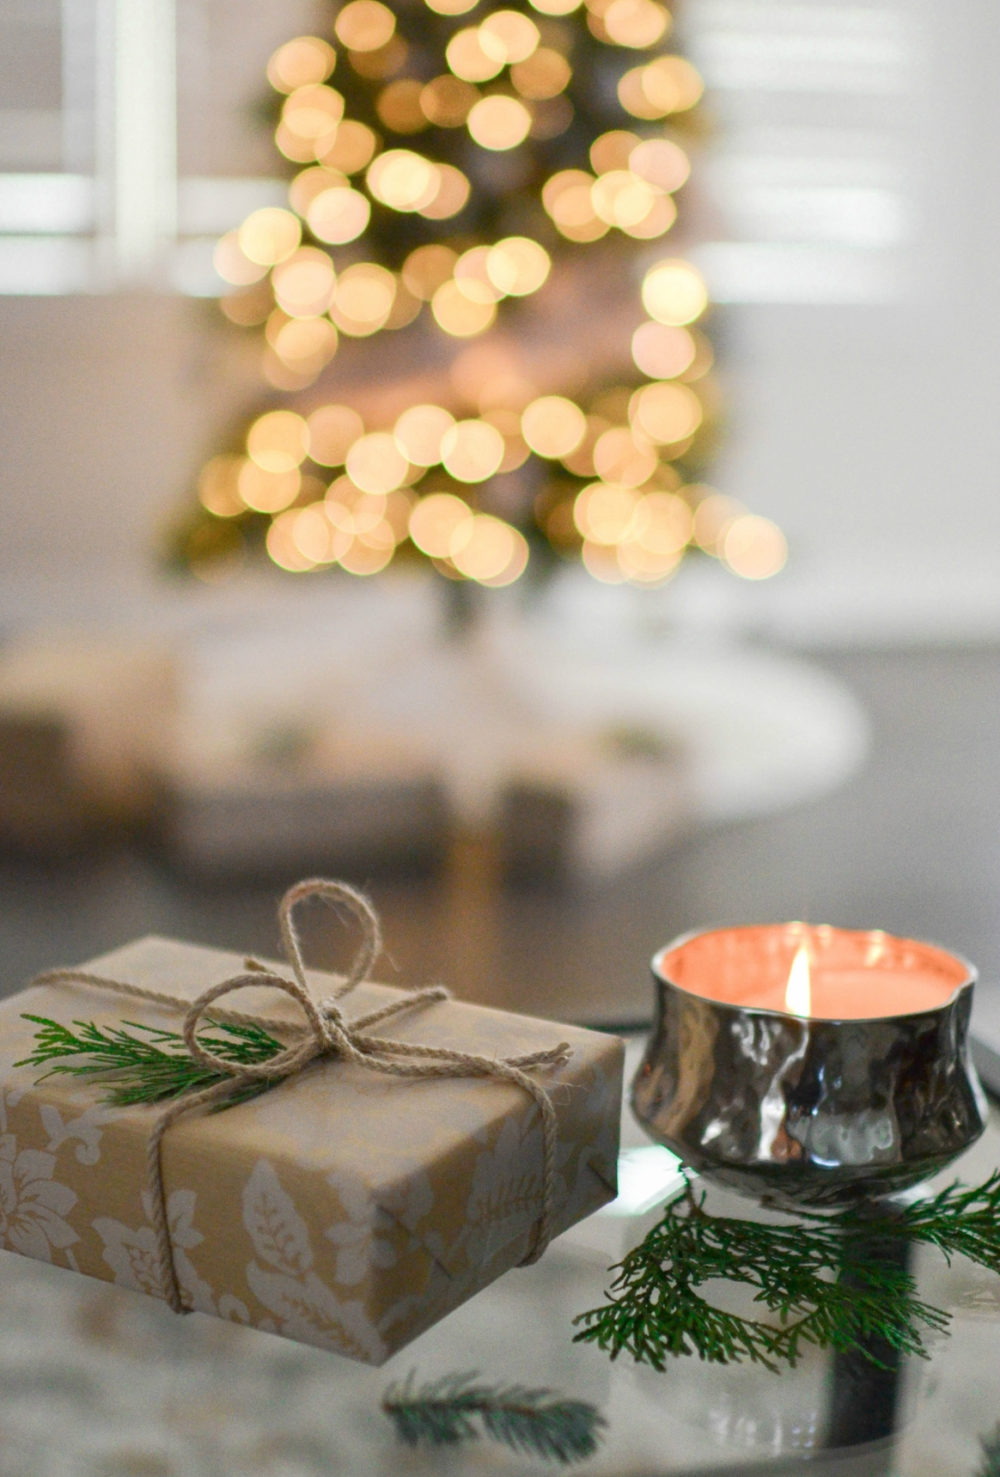 gift sitting on glass table with candle and Christmas tree